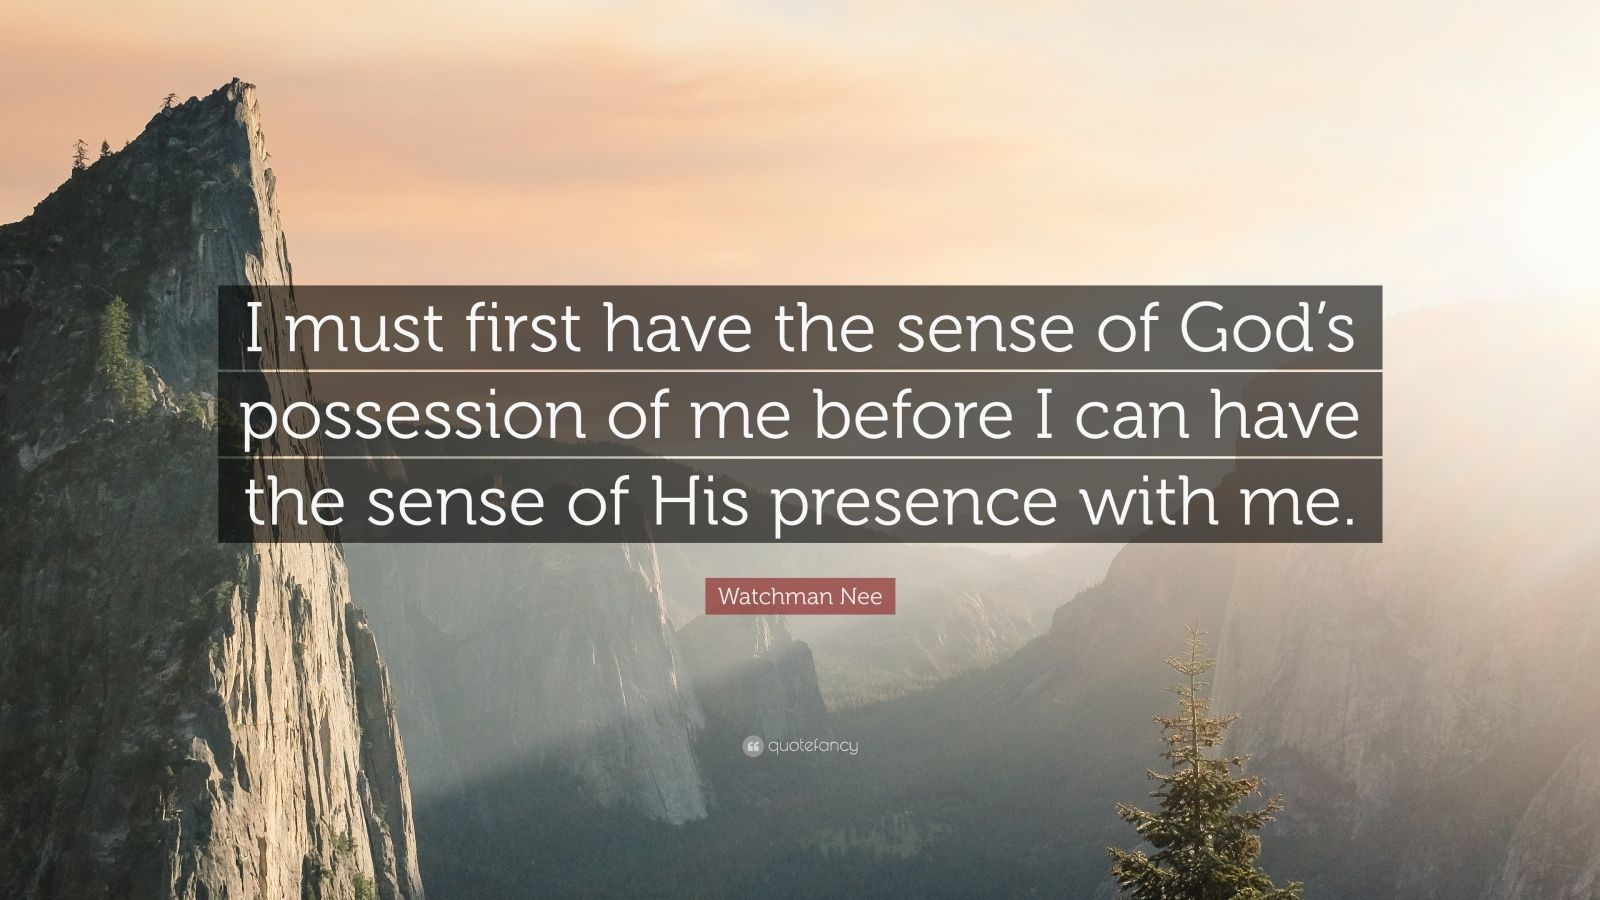 """Watchman Nee Quote: """"I must first have the sense of God's possession of me before I can have the sense of His presence with me."""""""